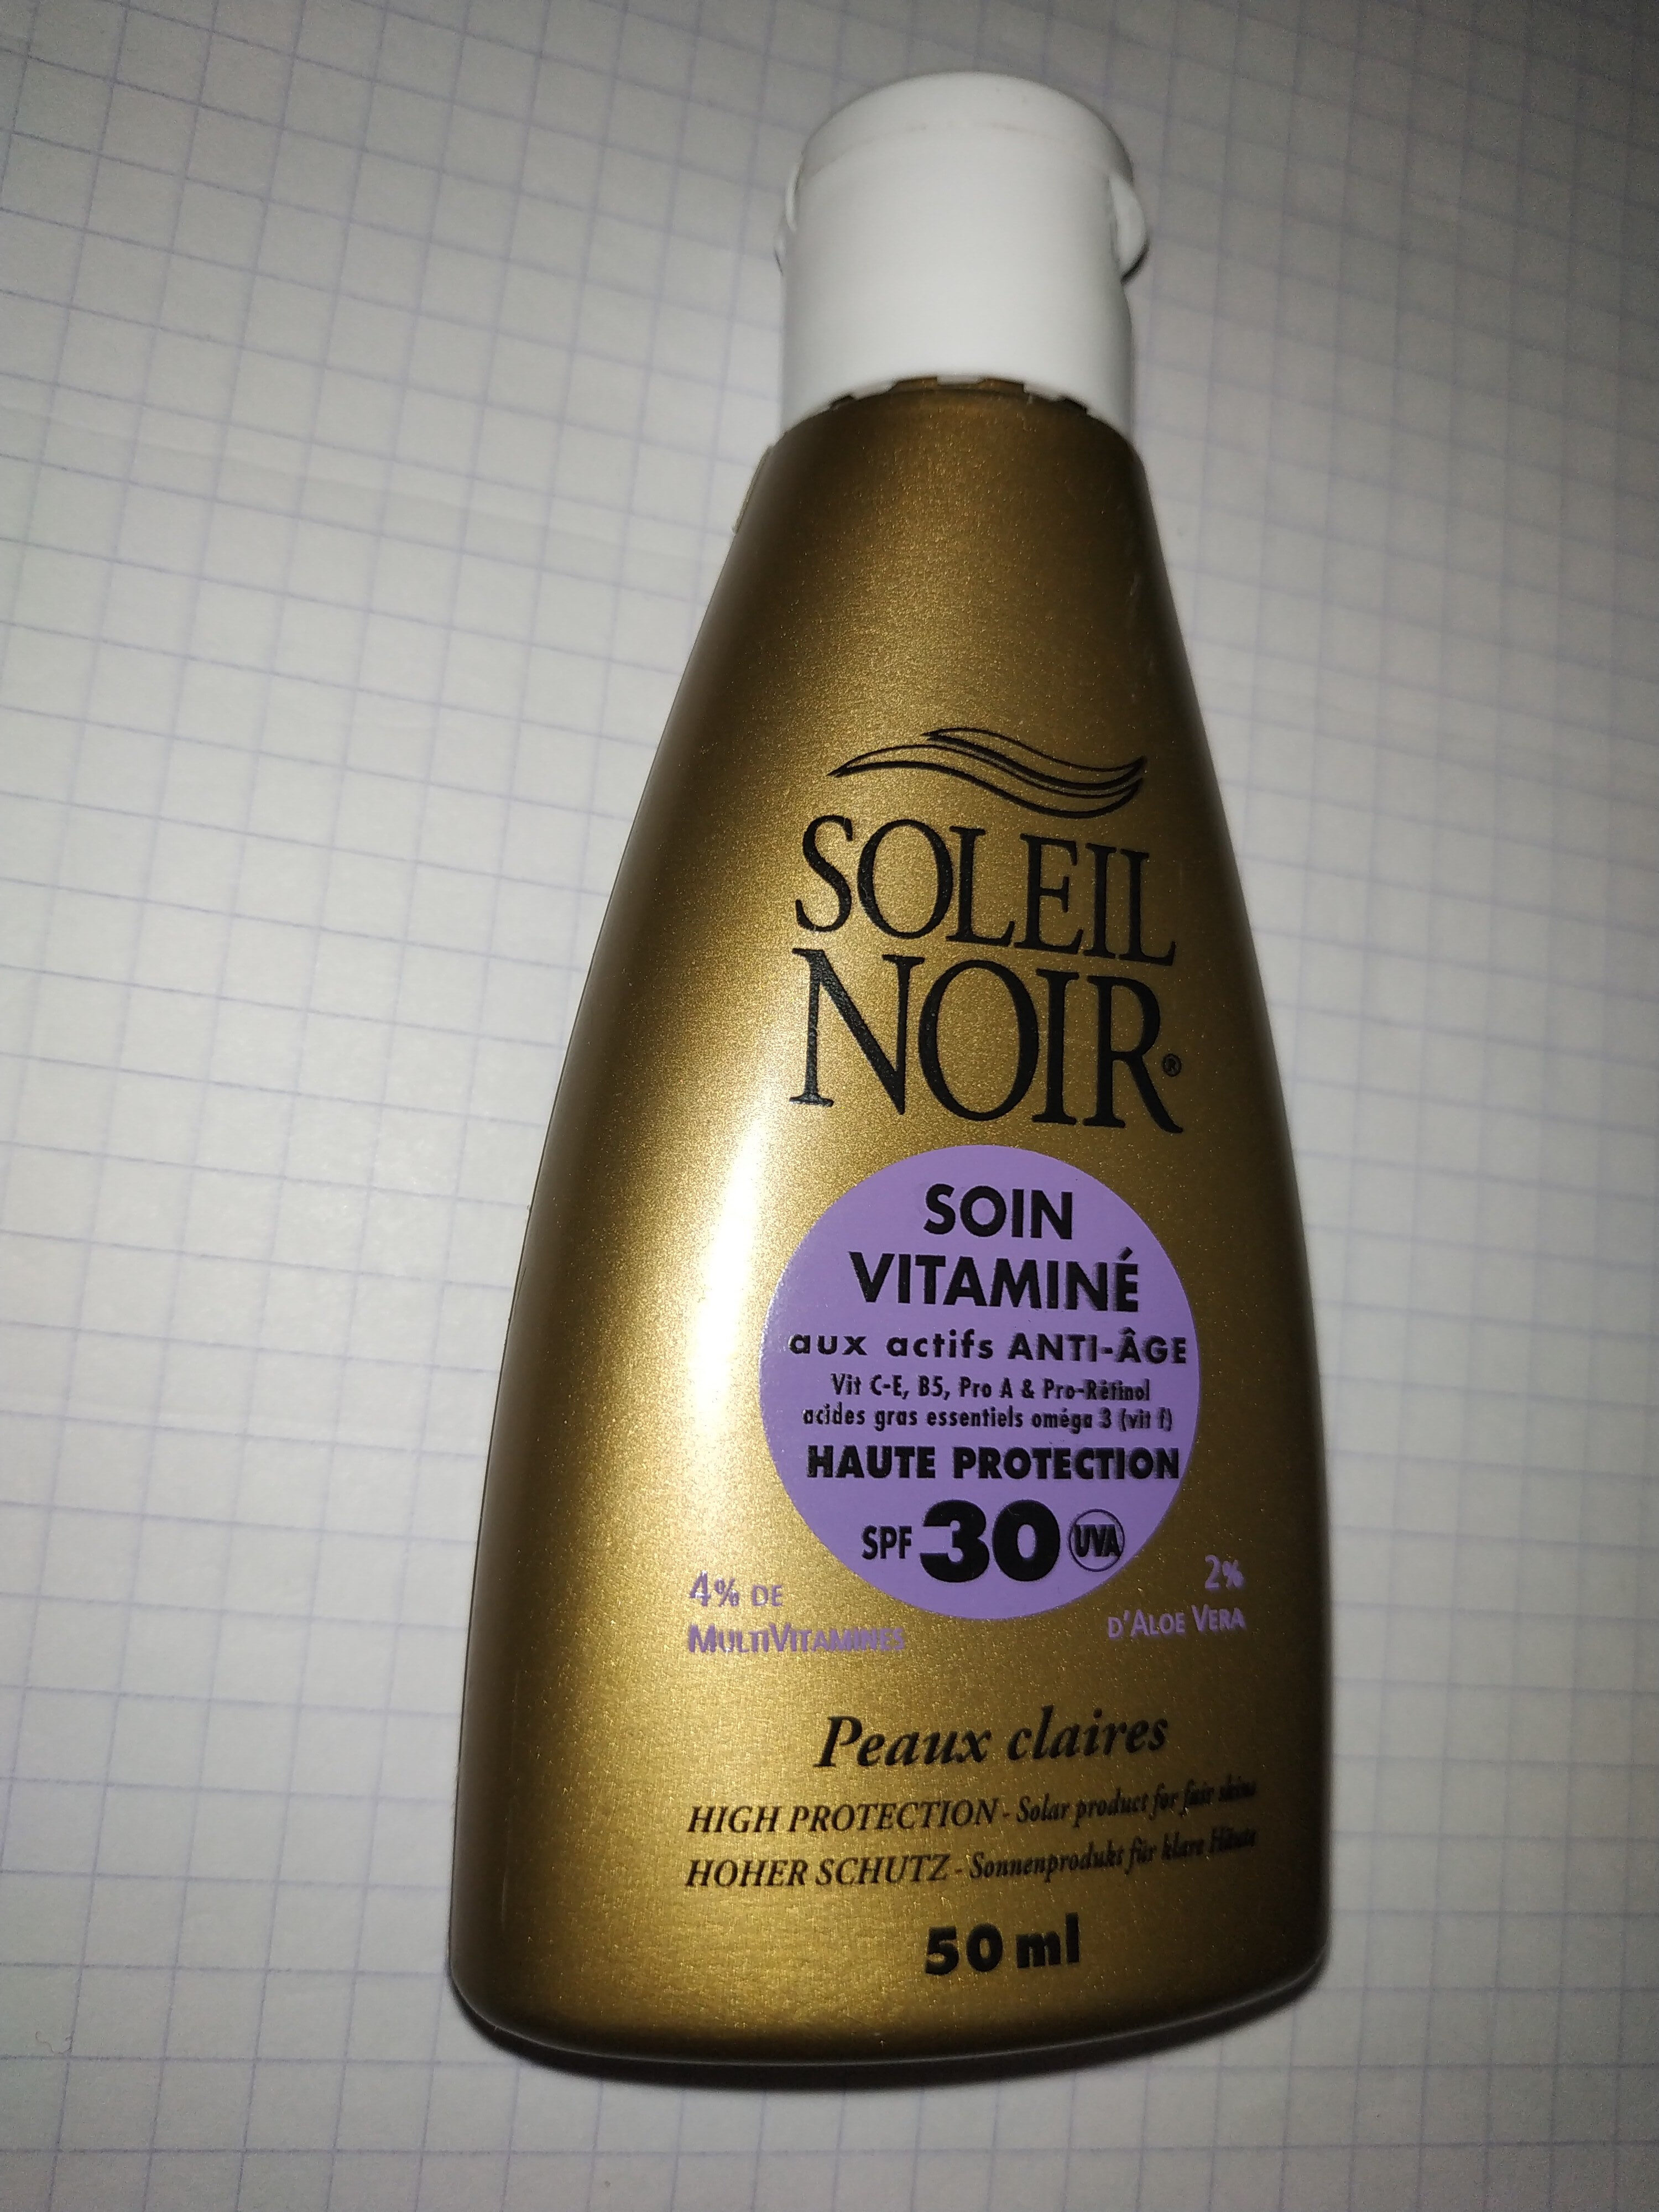 Soin vitaminé - Product - fr